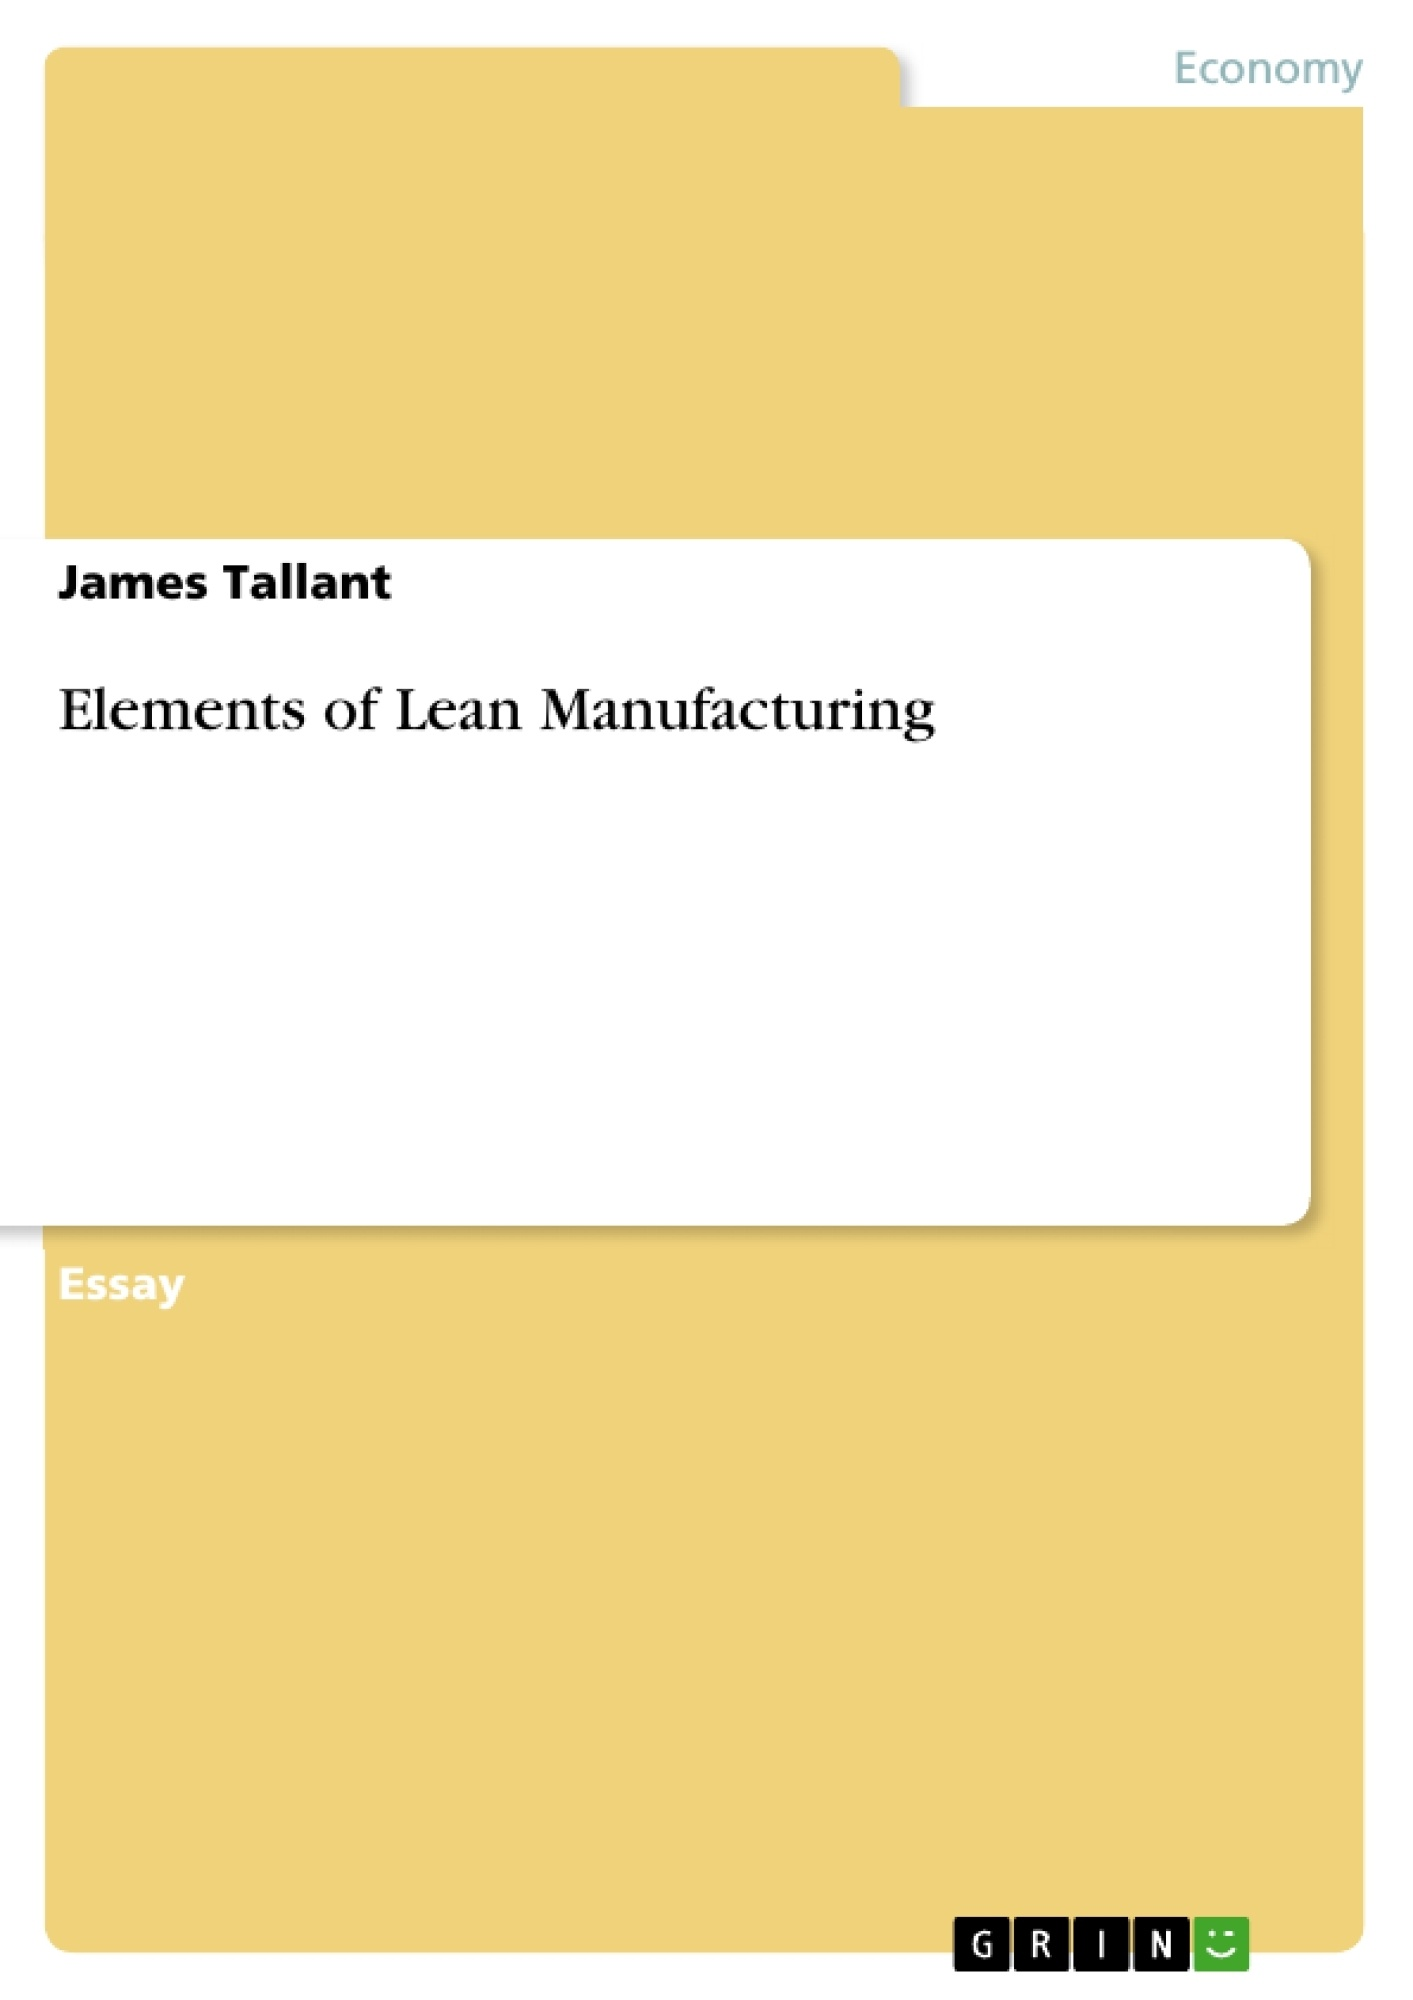 thesis on lean manufacturing